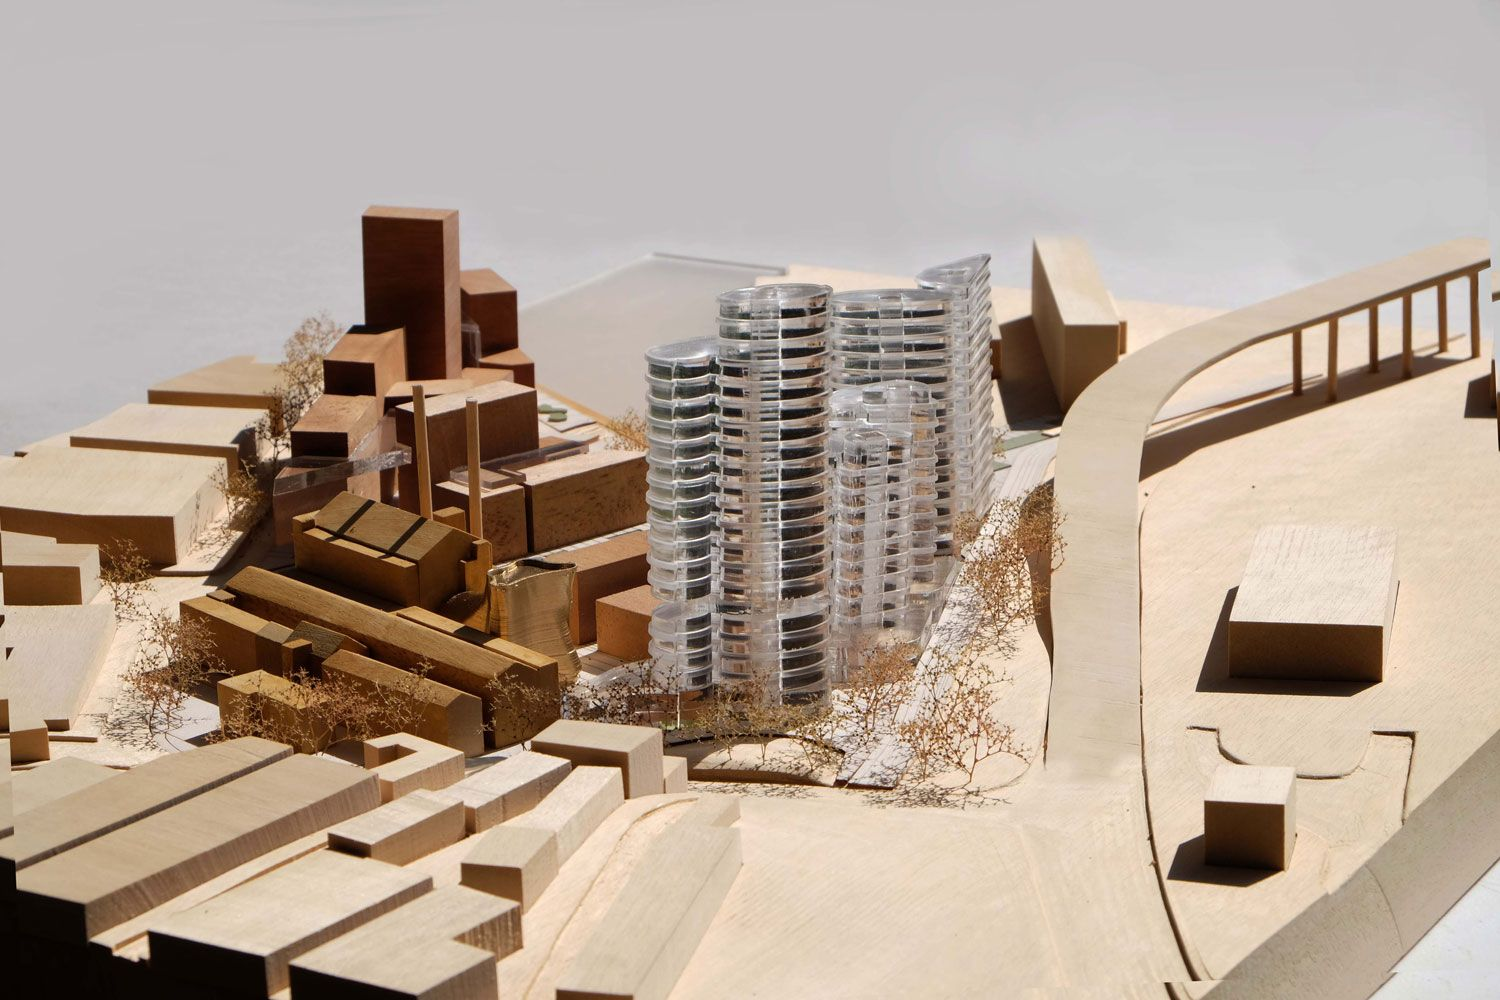 Make Models Interview Architectural models and Architecture